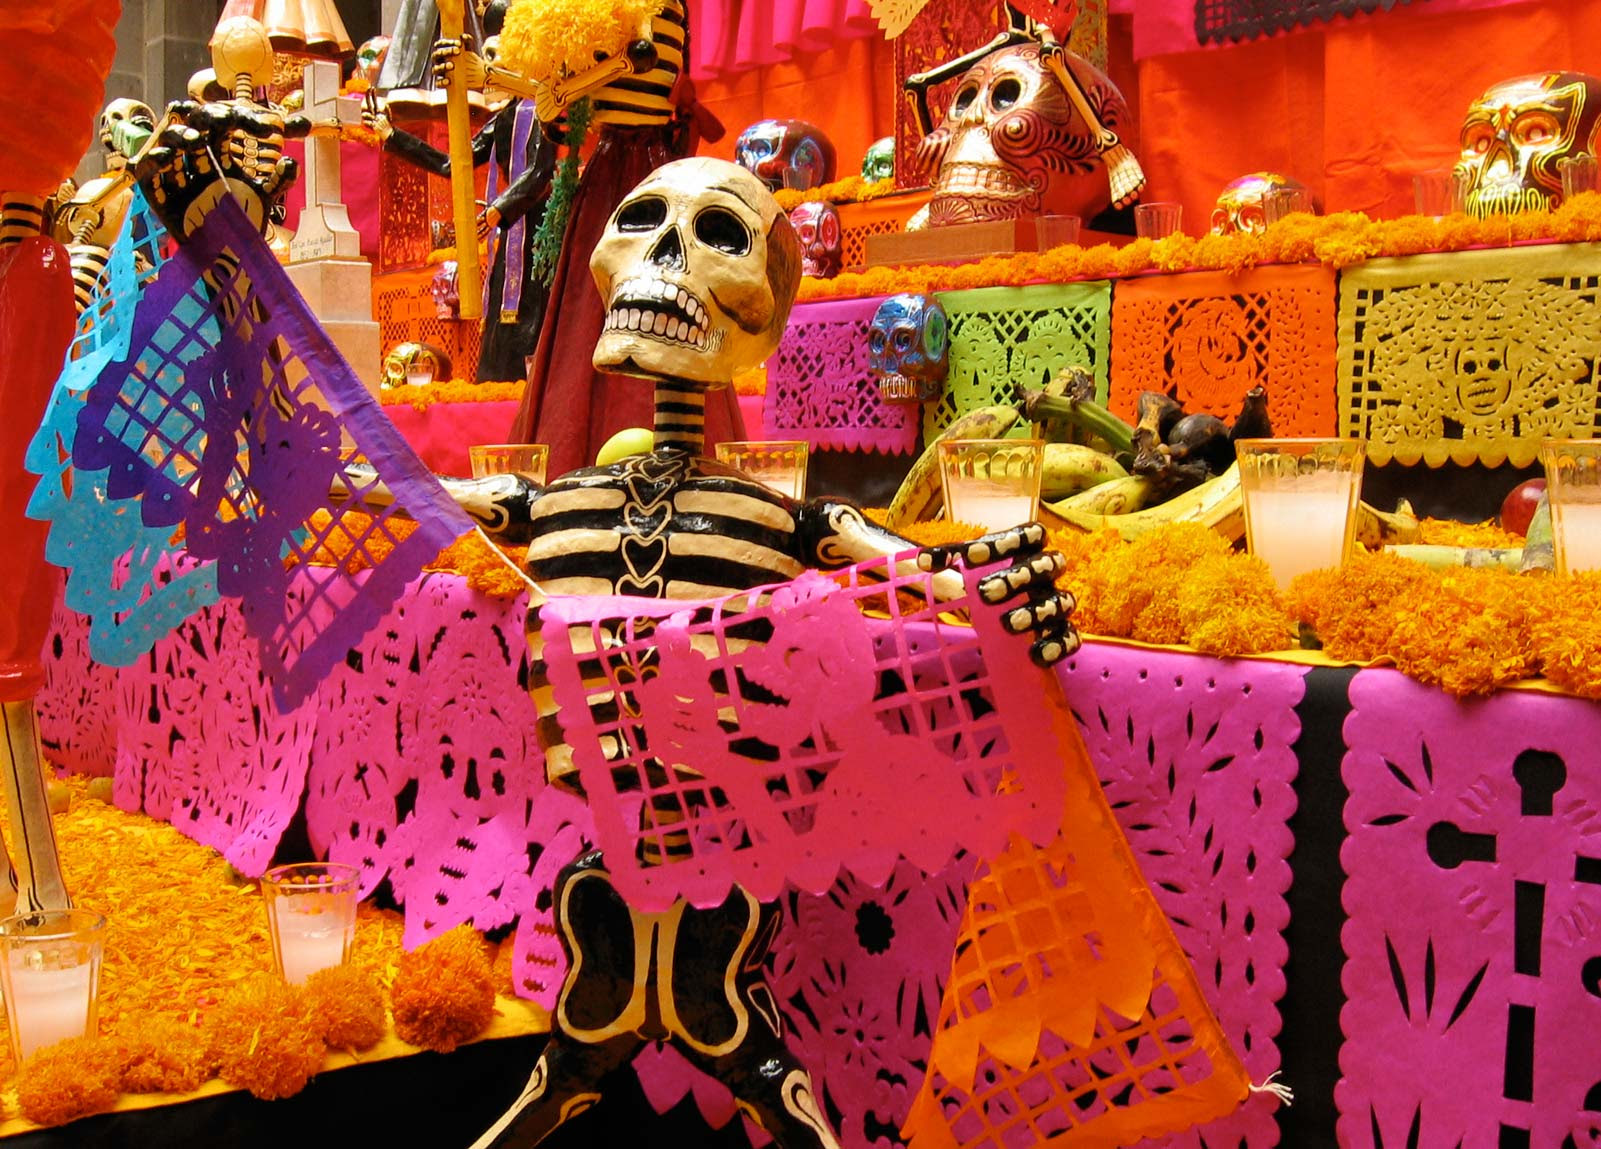 day of the dead mexico tattoo. While Mexico Day of the Dead